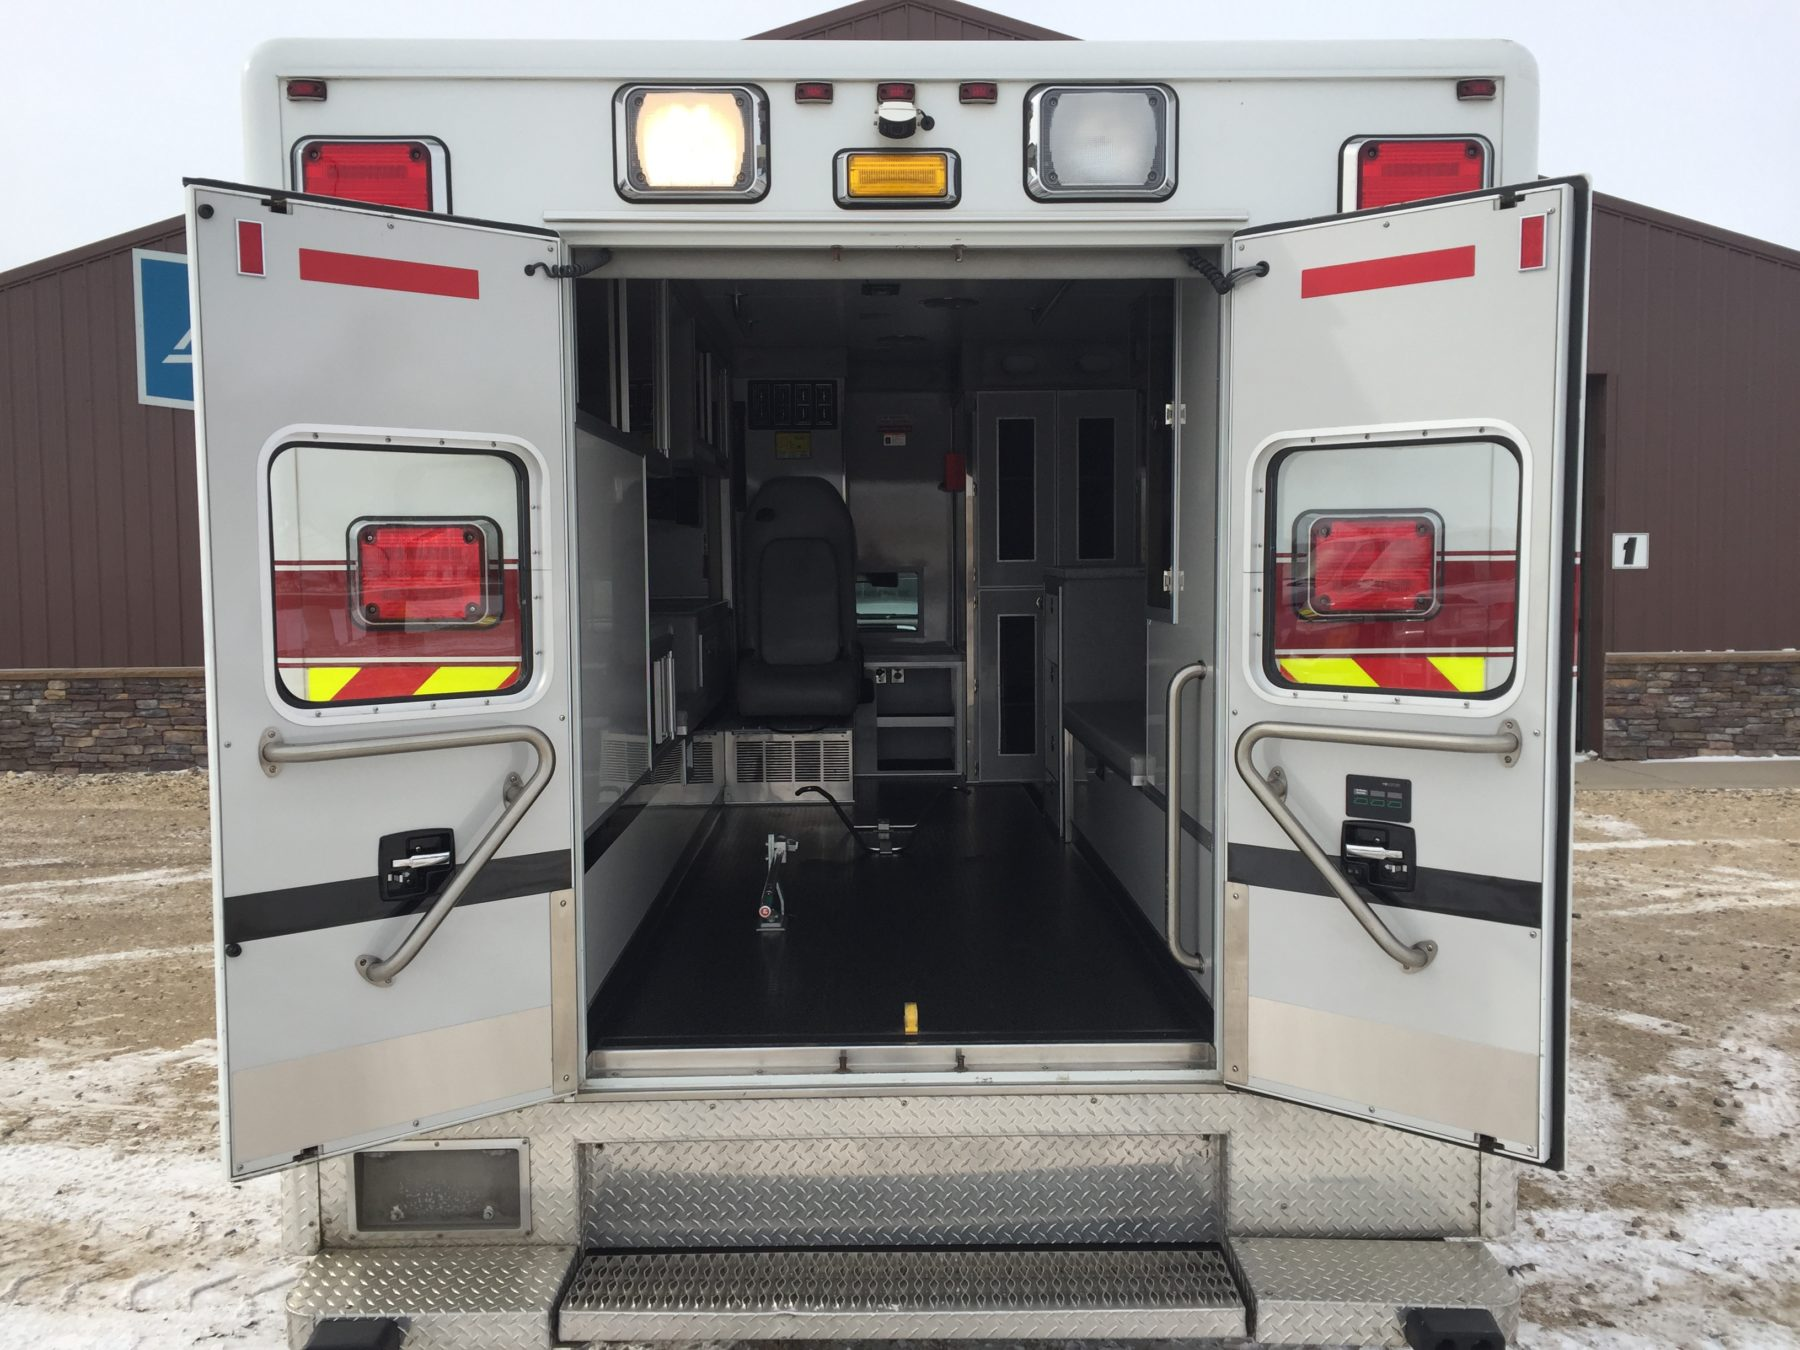 2012 Dodge 4500 Heavy Duty Ambulance For Sale – Picture 10